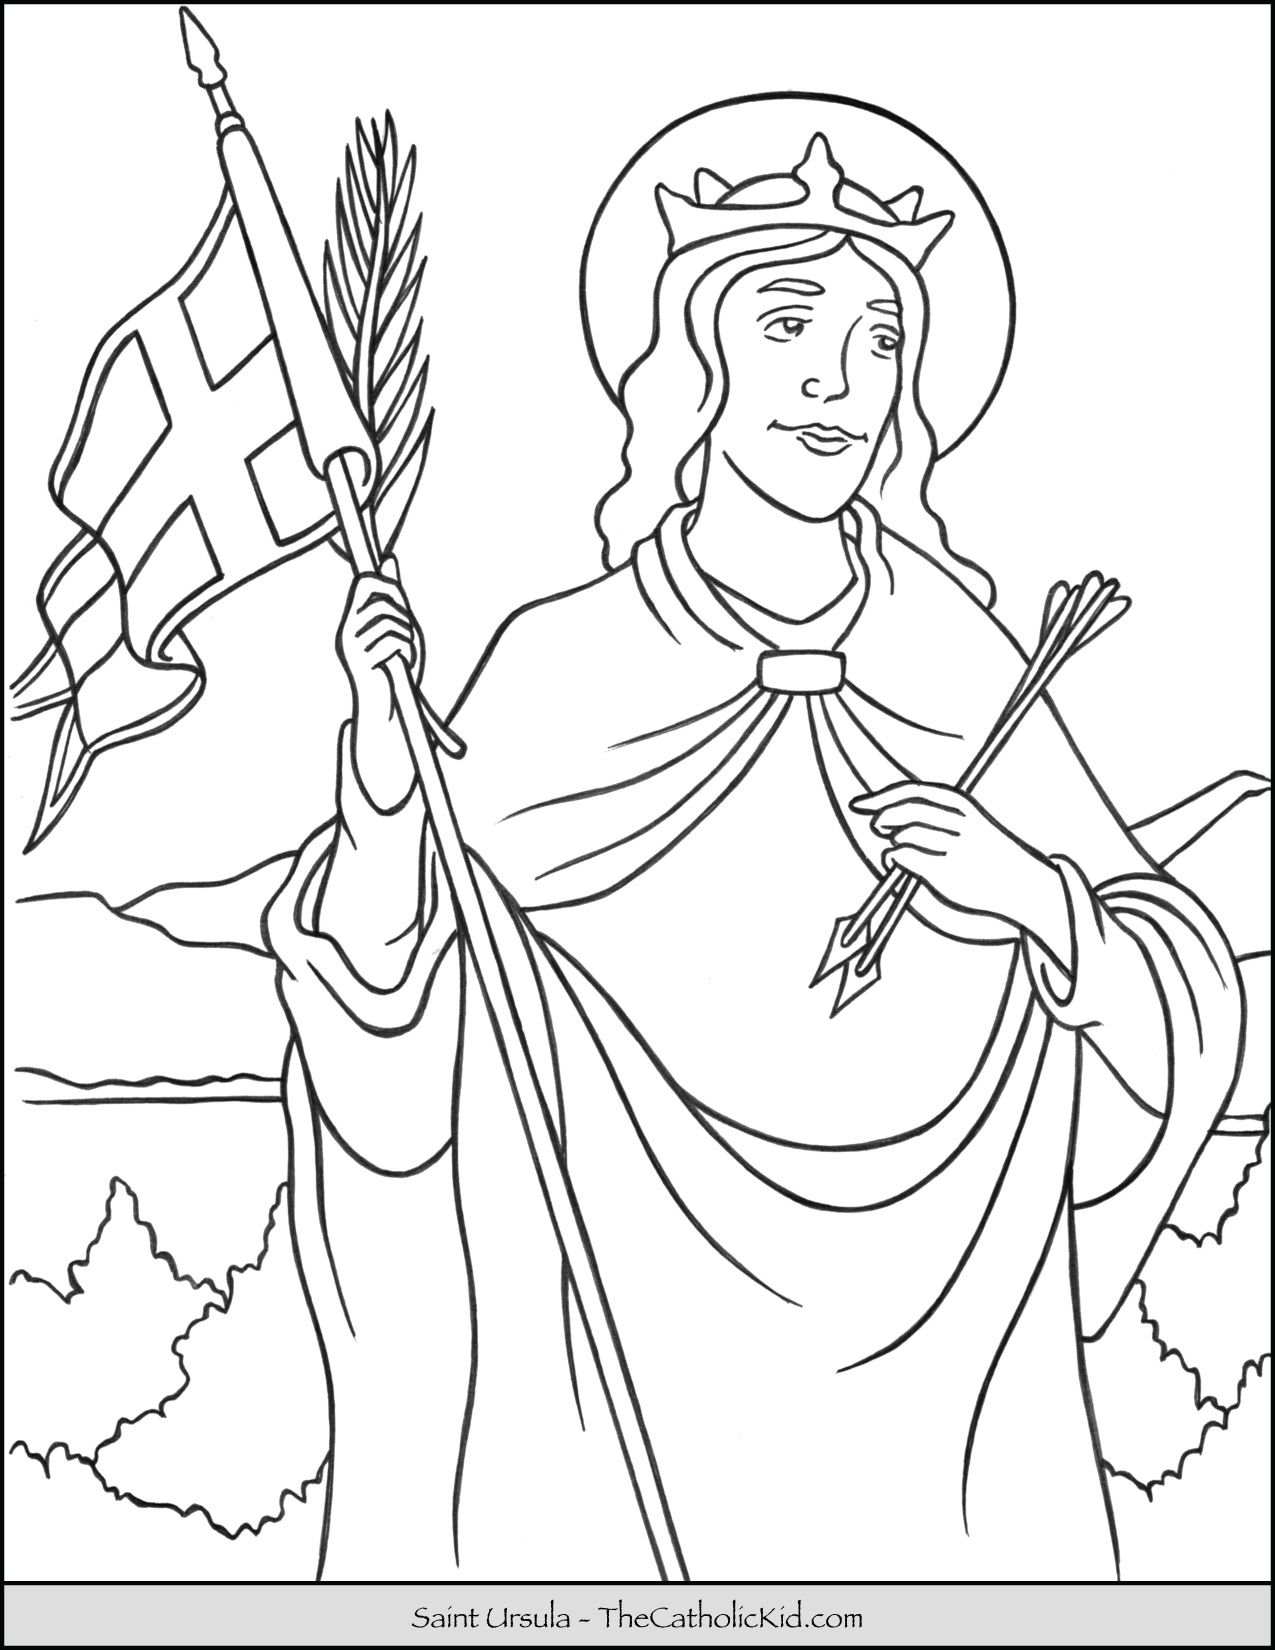 Saint Ursula Coloring Page Thecatholickid Com With Images